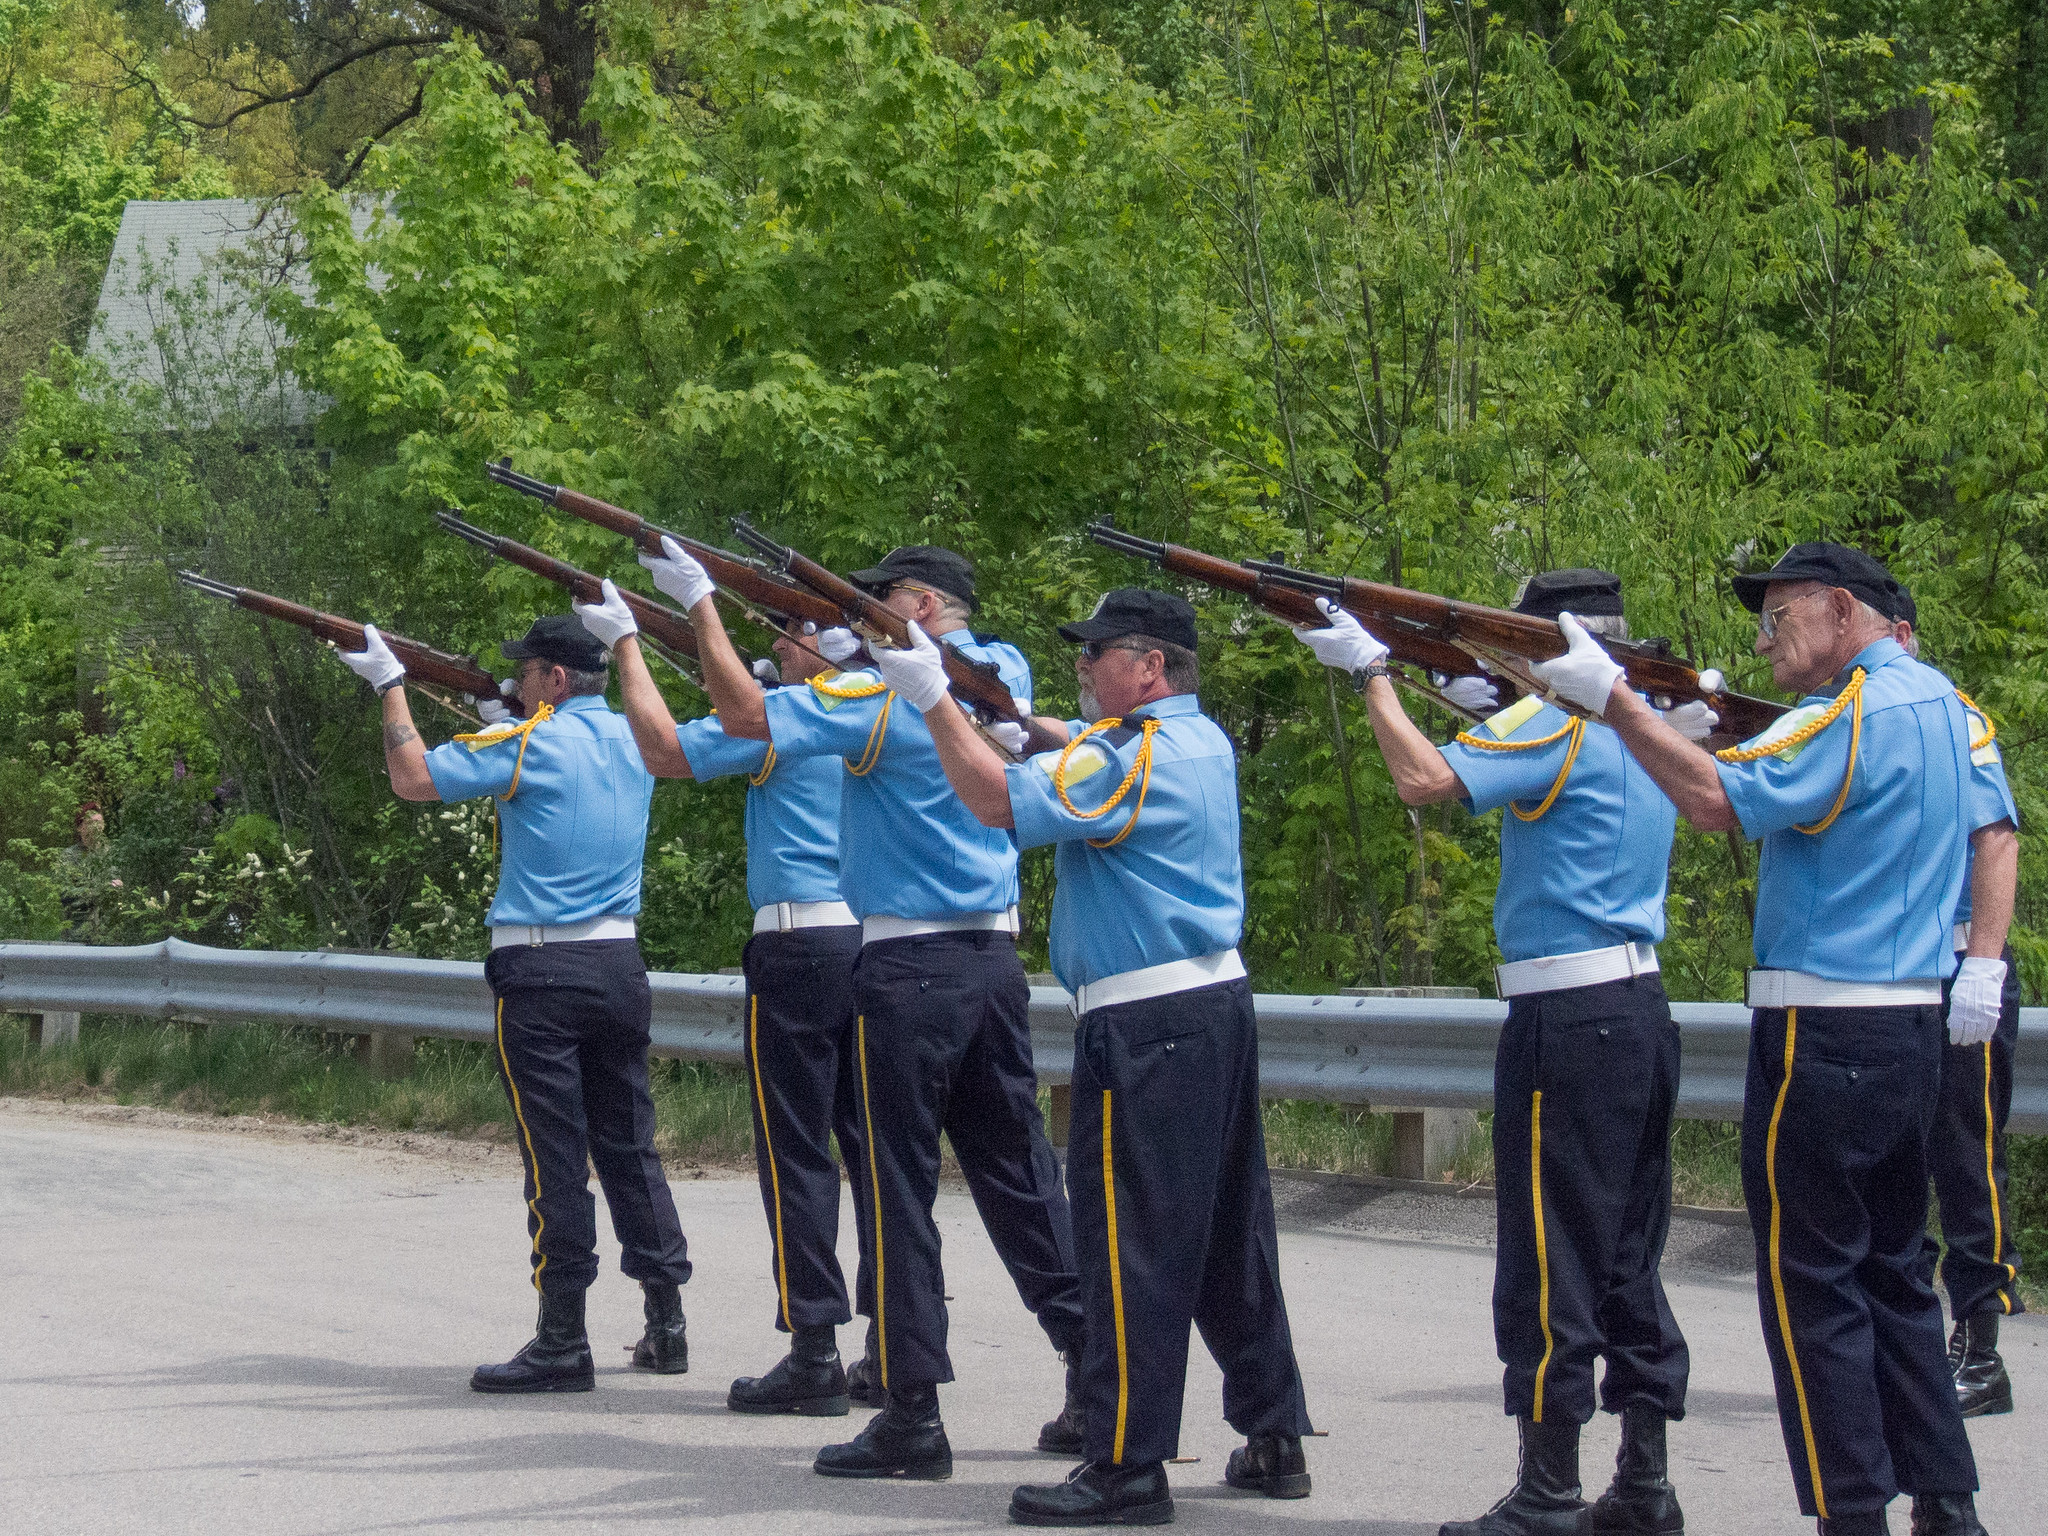 Memorial Day Rifle Salute